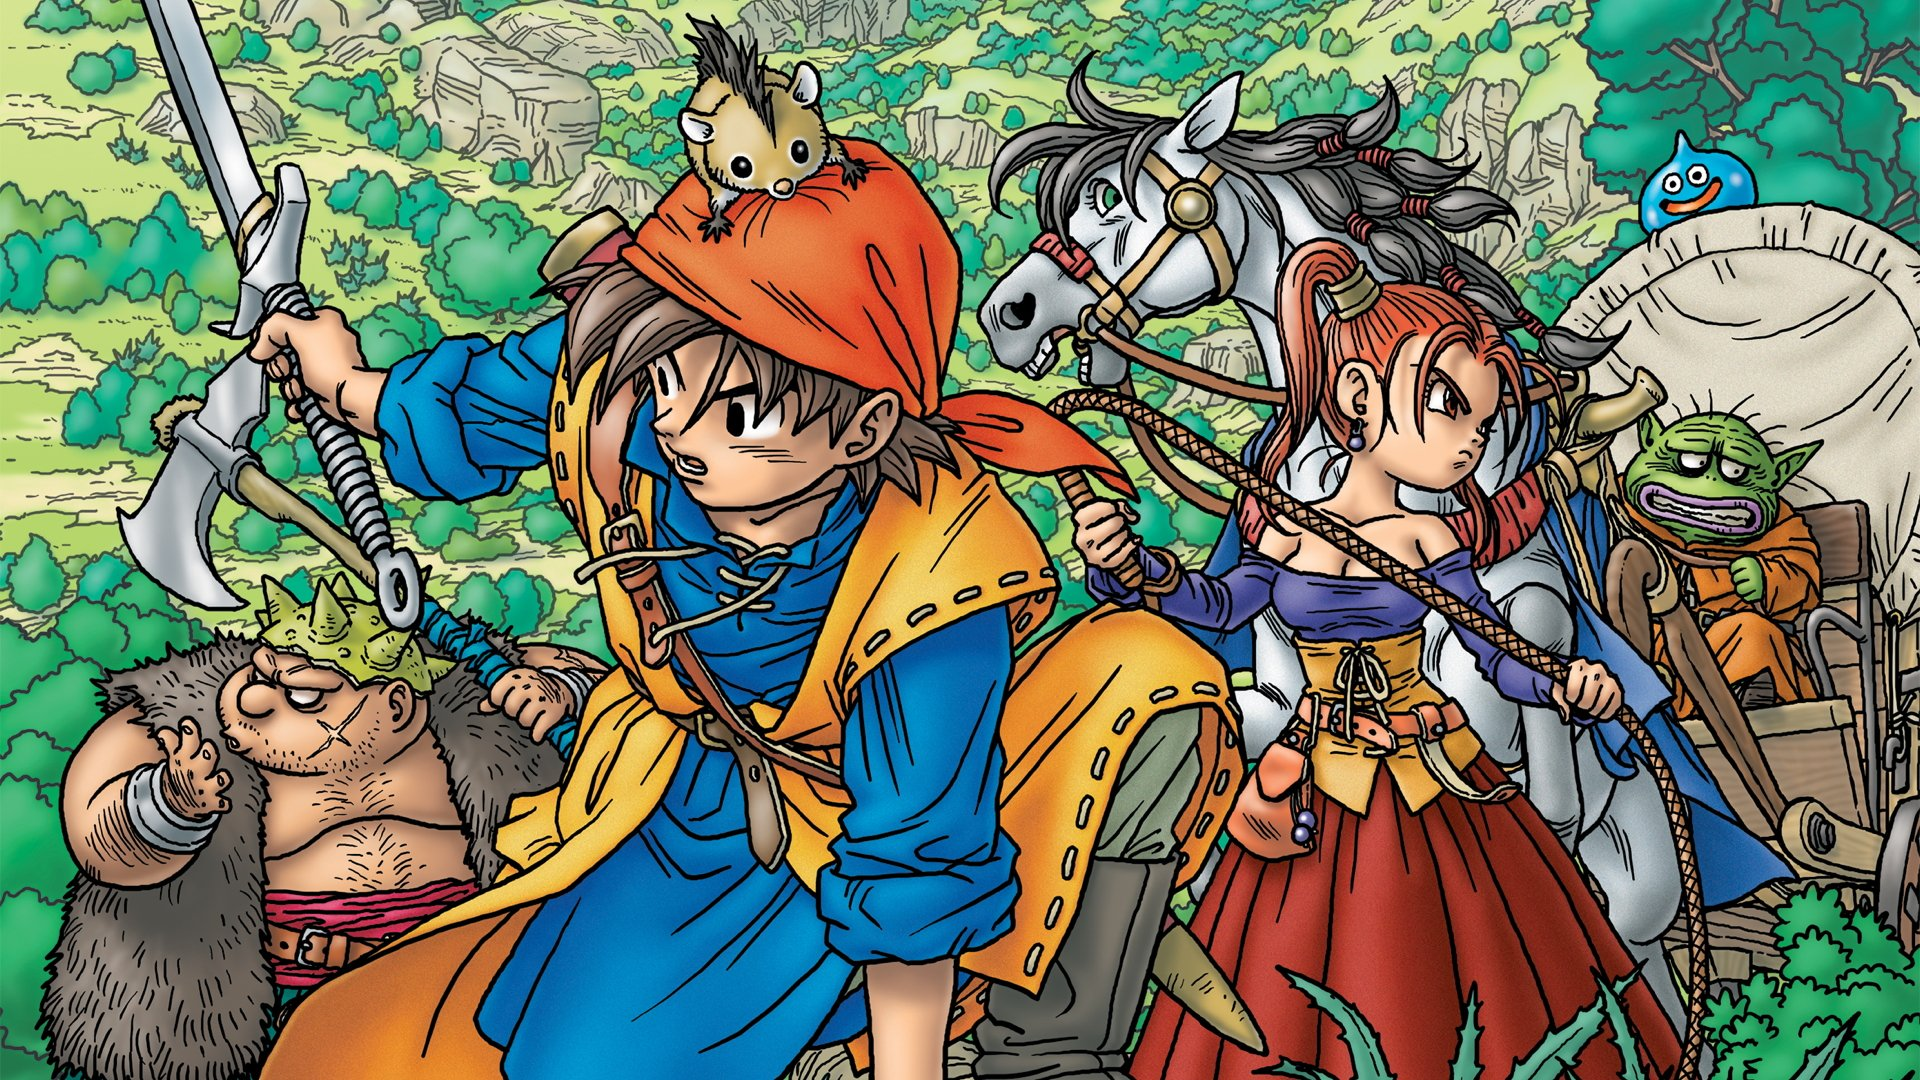 Dragon Quest 7 3ds Fliegender Teppich Dragon Quest 7 And 8 Finally Coming To 3ds In The West Vg247